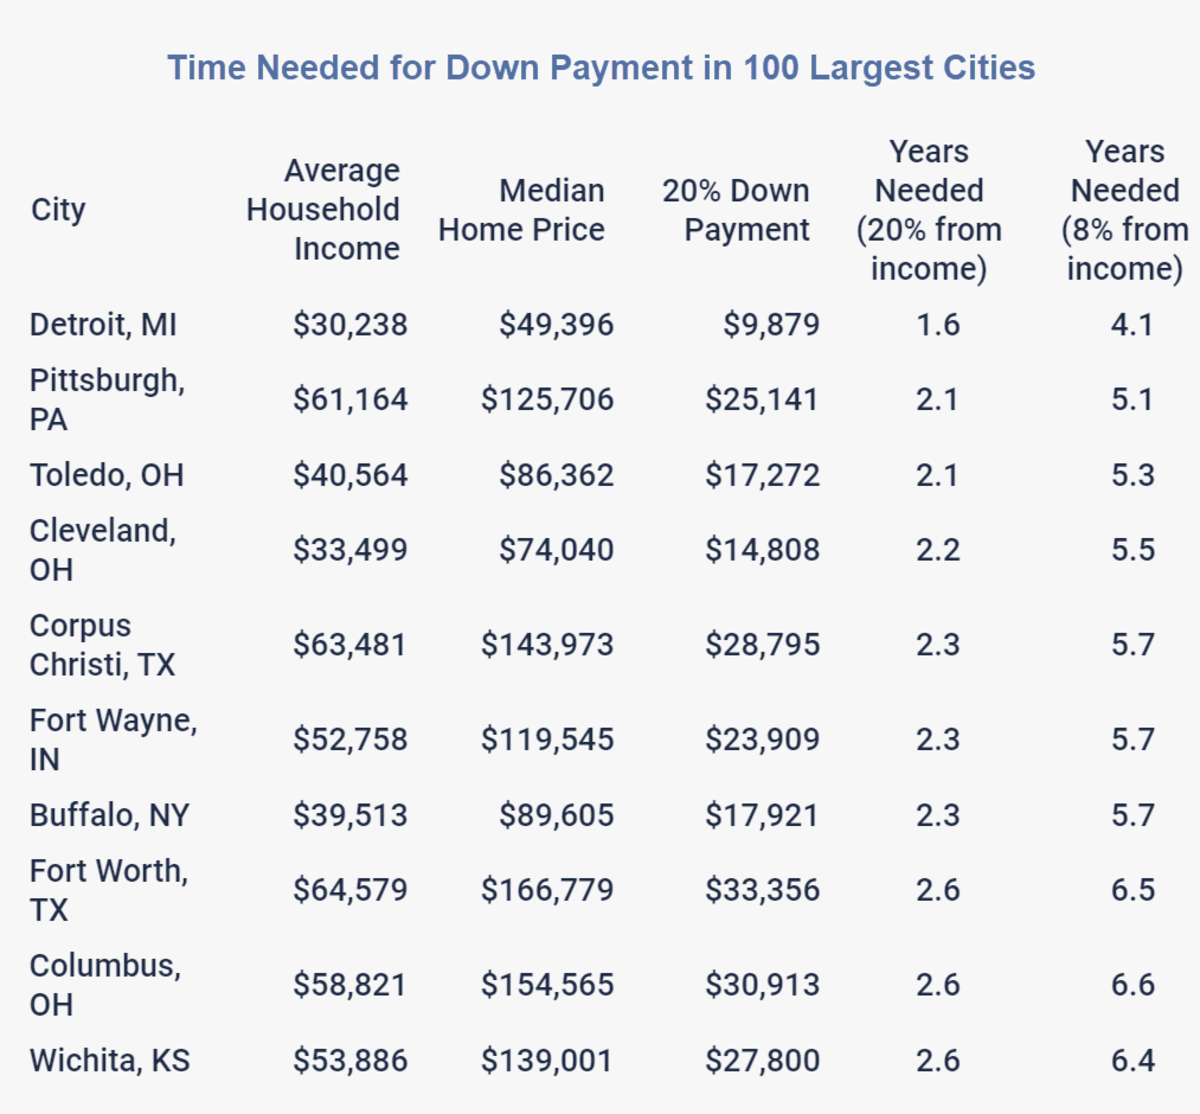 Time Needed for Down Payment in 100 Largest Cities